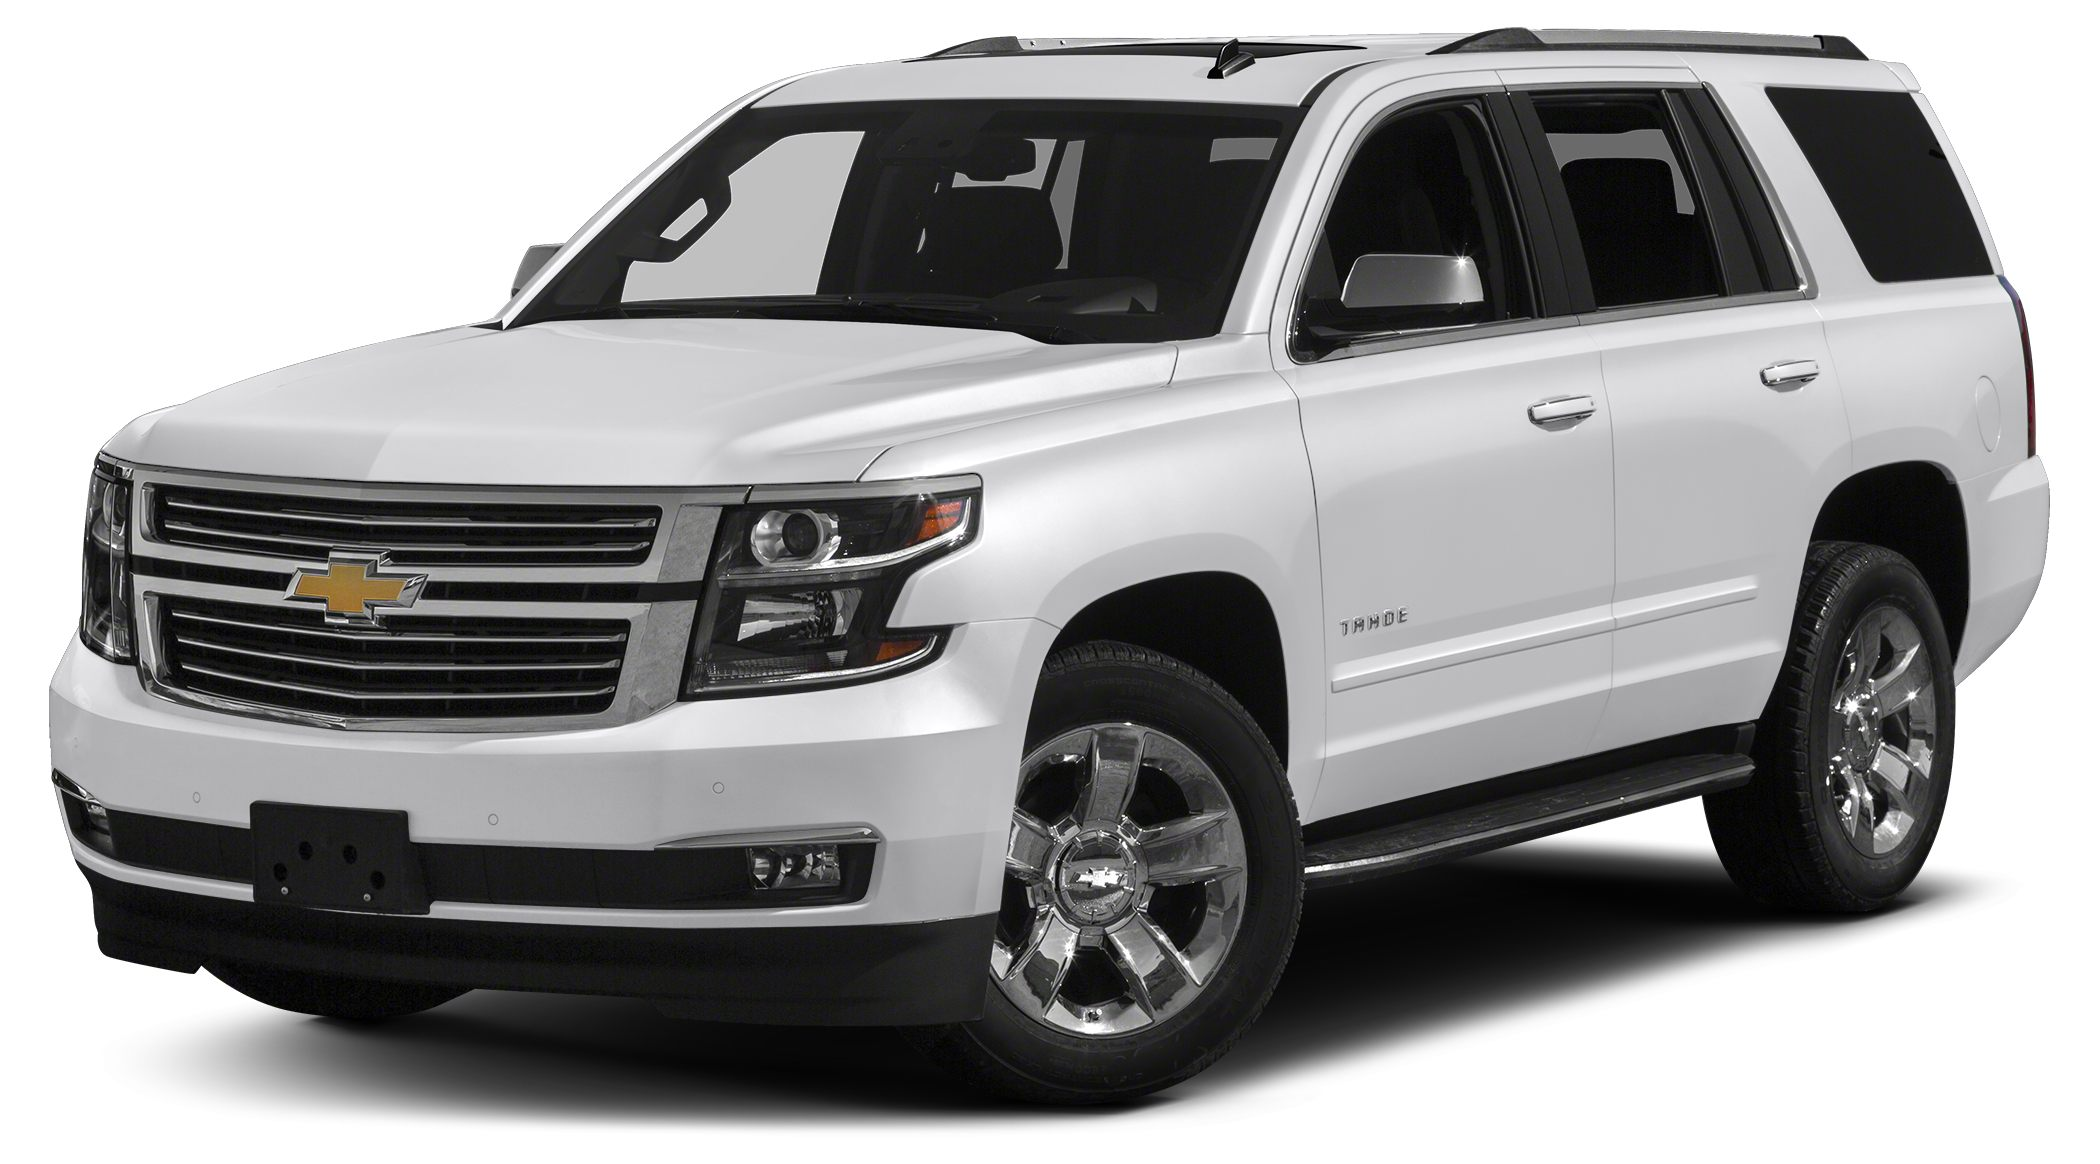 2017 Chevrolet Tahoe Premier Summit White 2017 Chevrolet Tahoe Premier RWD 6-Speed Automatic EcoTe